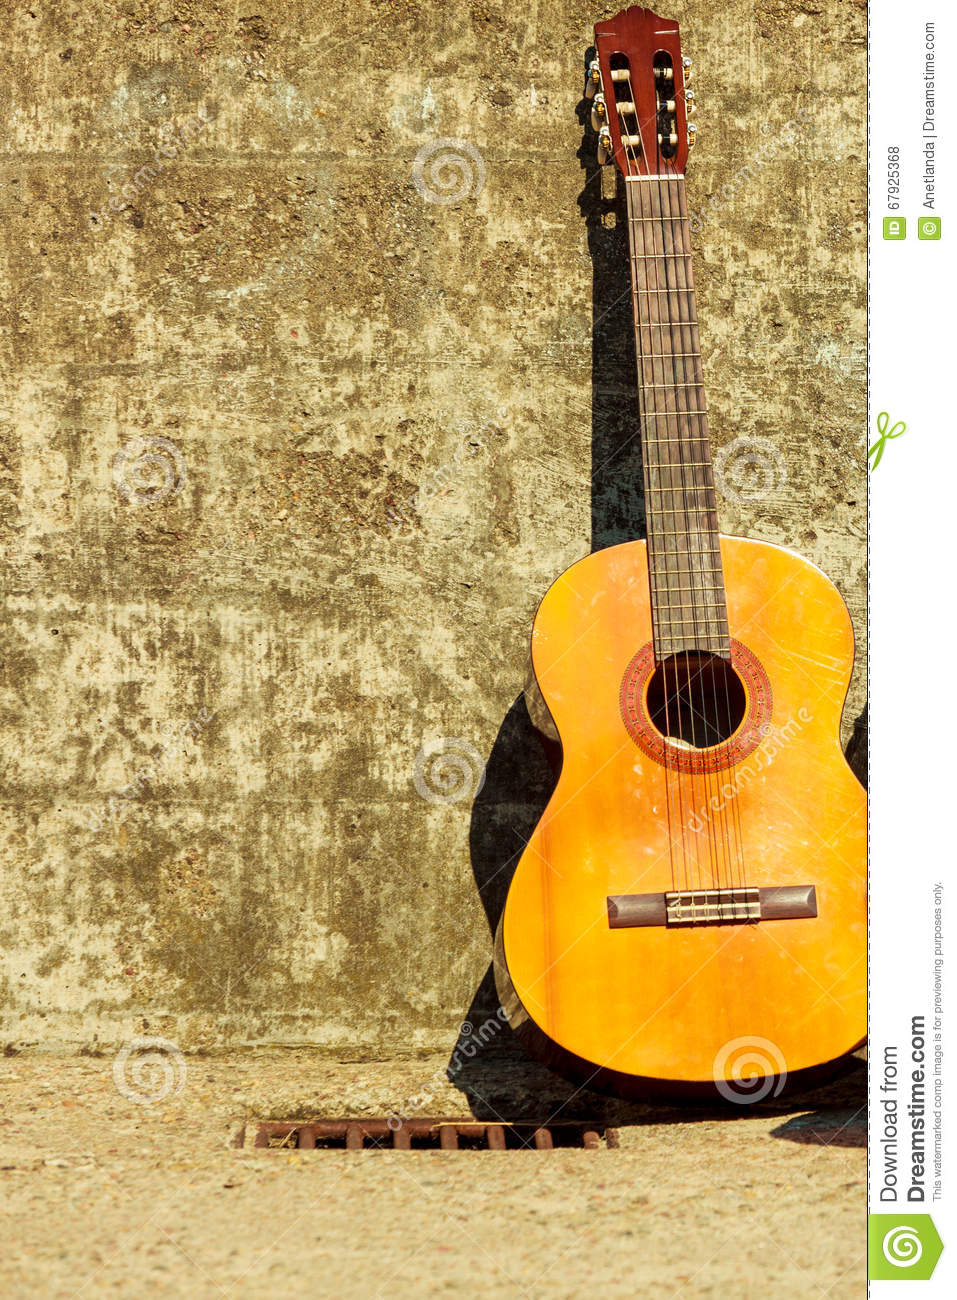 Acoustic Guitar Outdoor On Wall Background Stock Photo - Image of ...